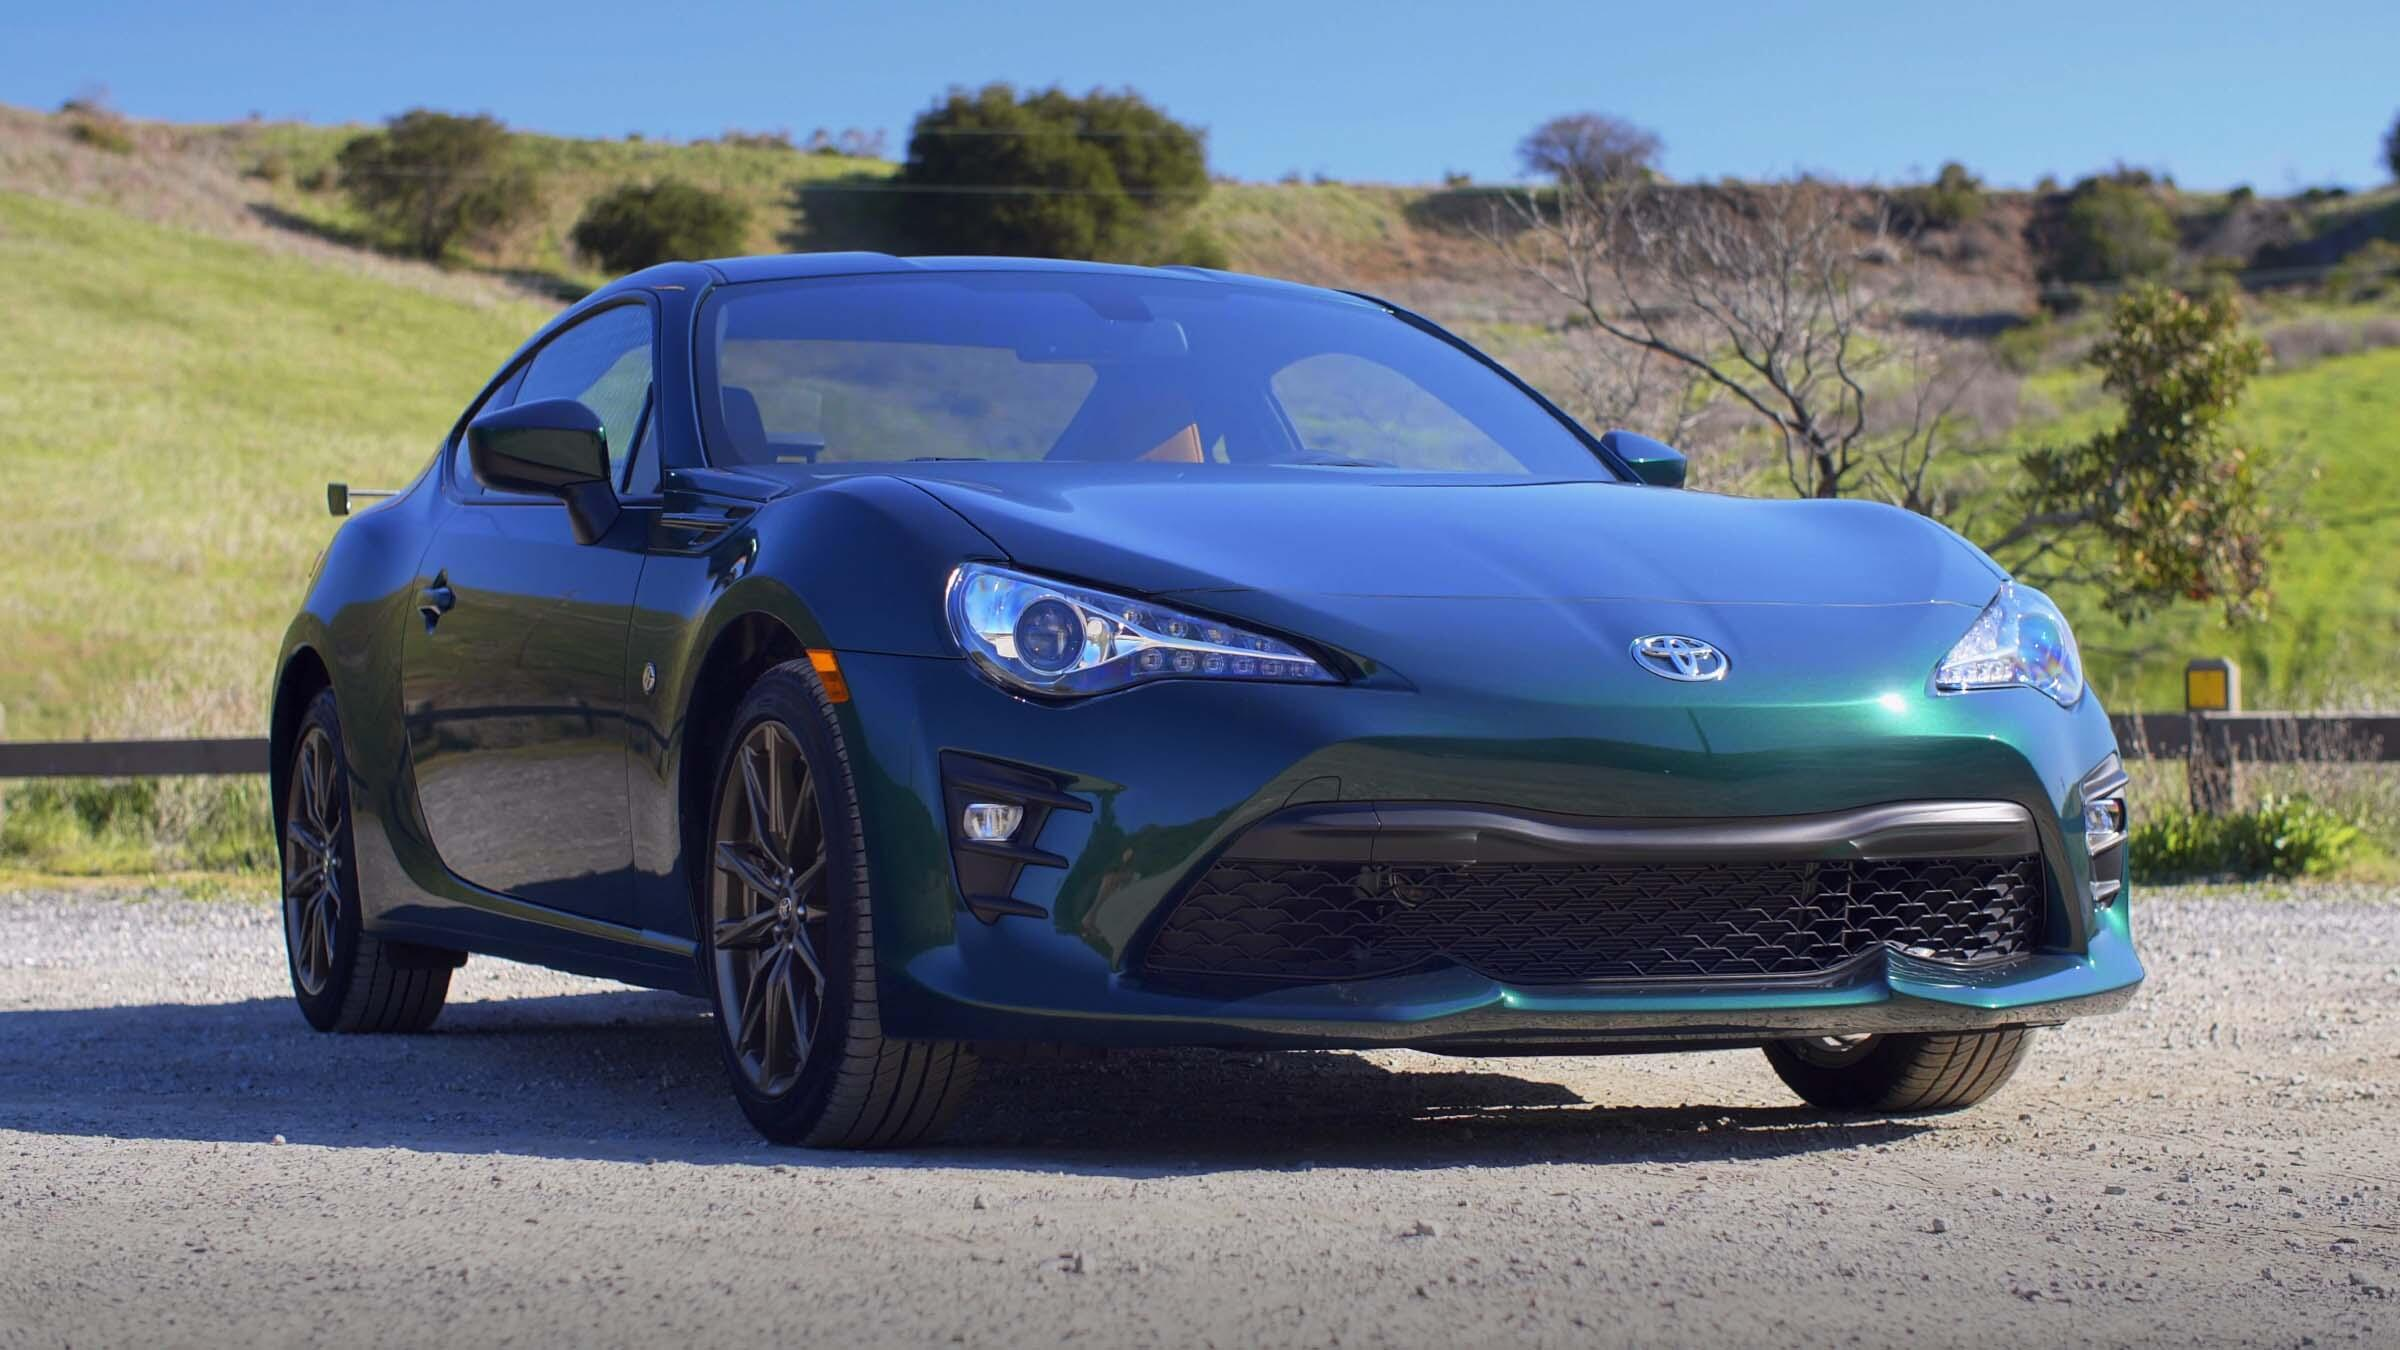 Video: 2020 Toyota 86 Hakone Edition: A slice of green heaven